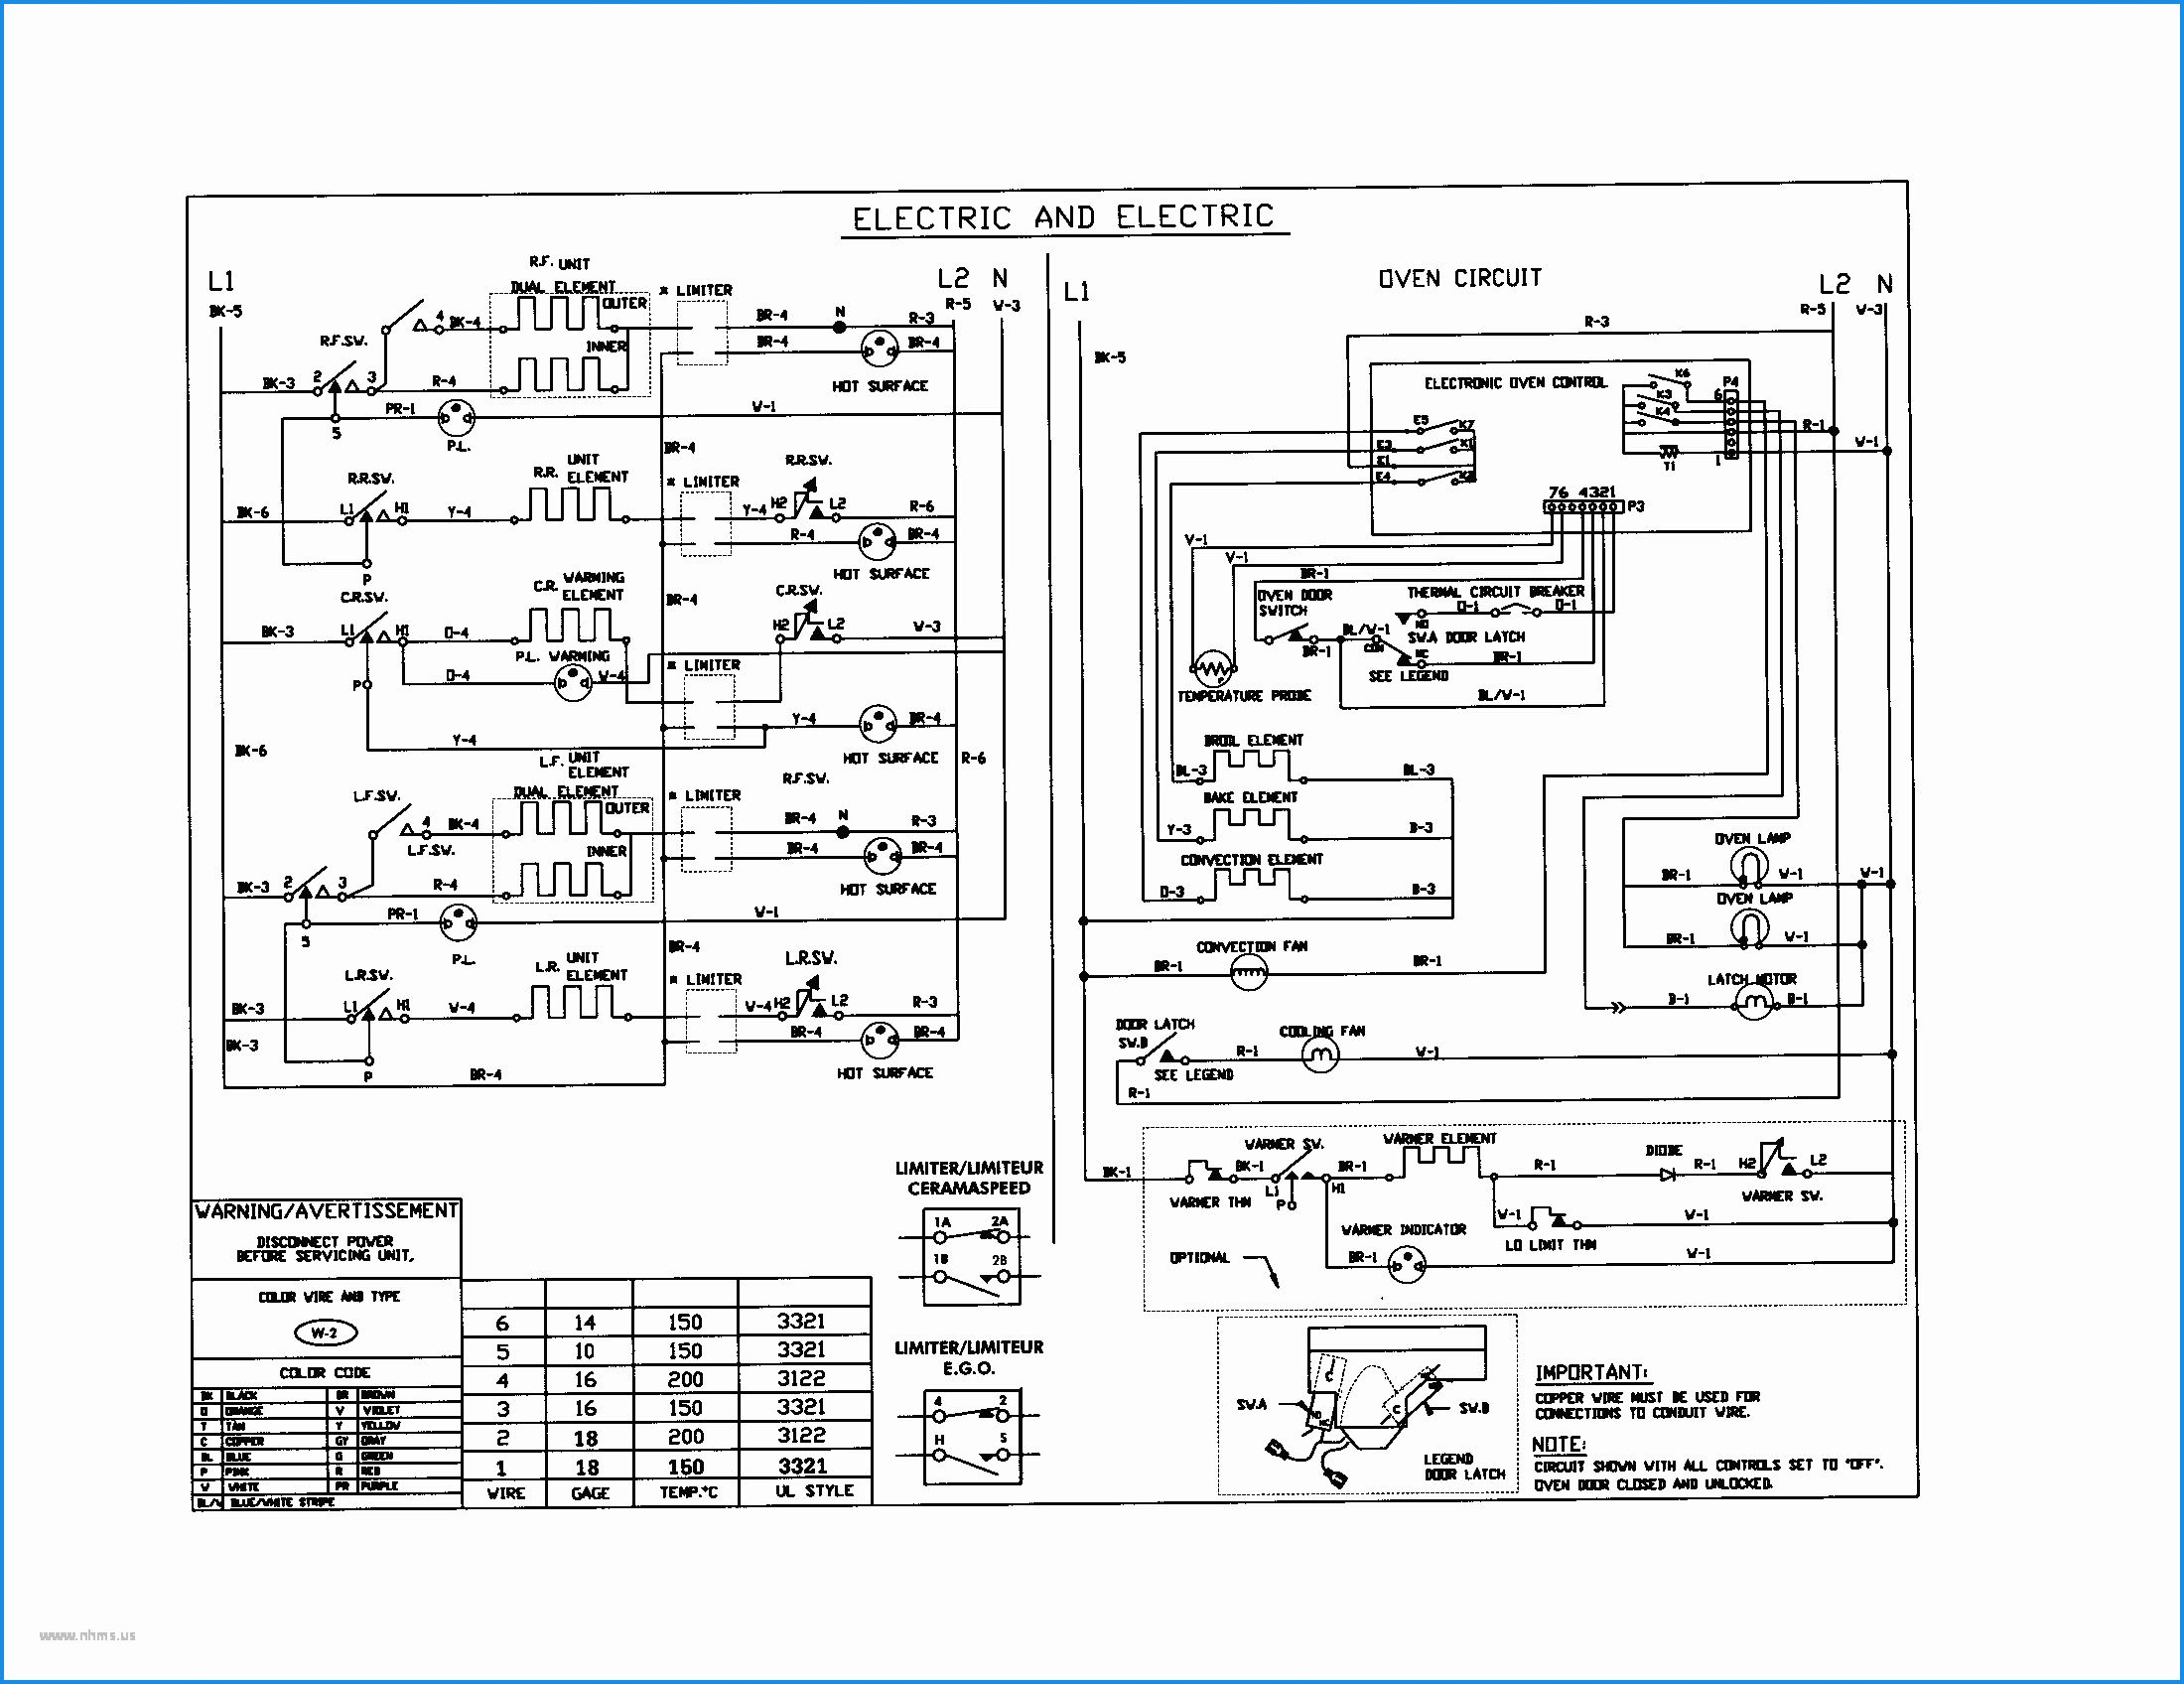 Wiring Diagram Of Washing Machine With Dryer